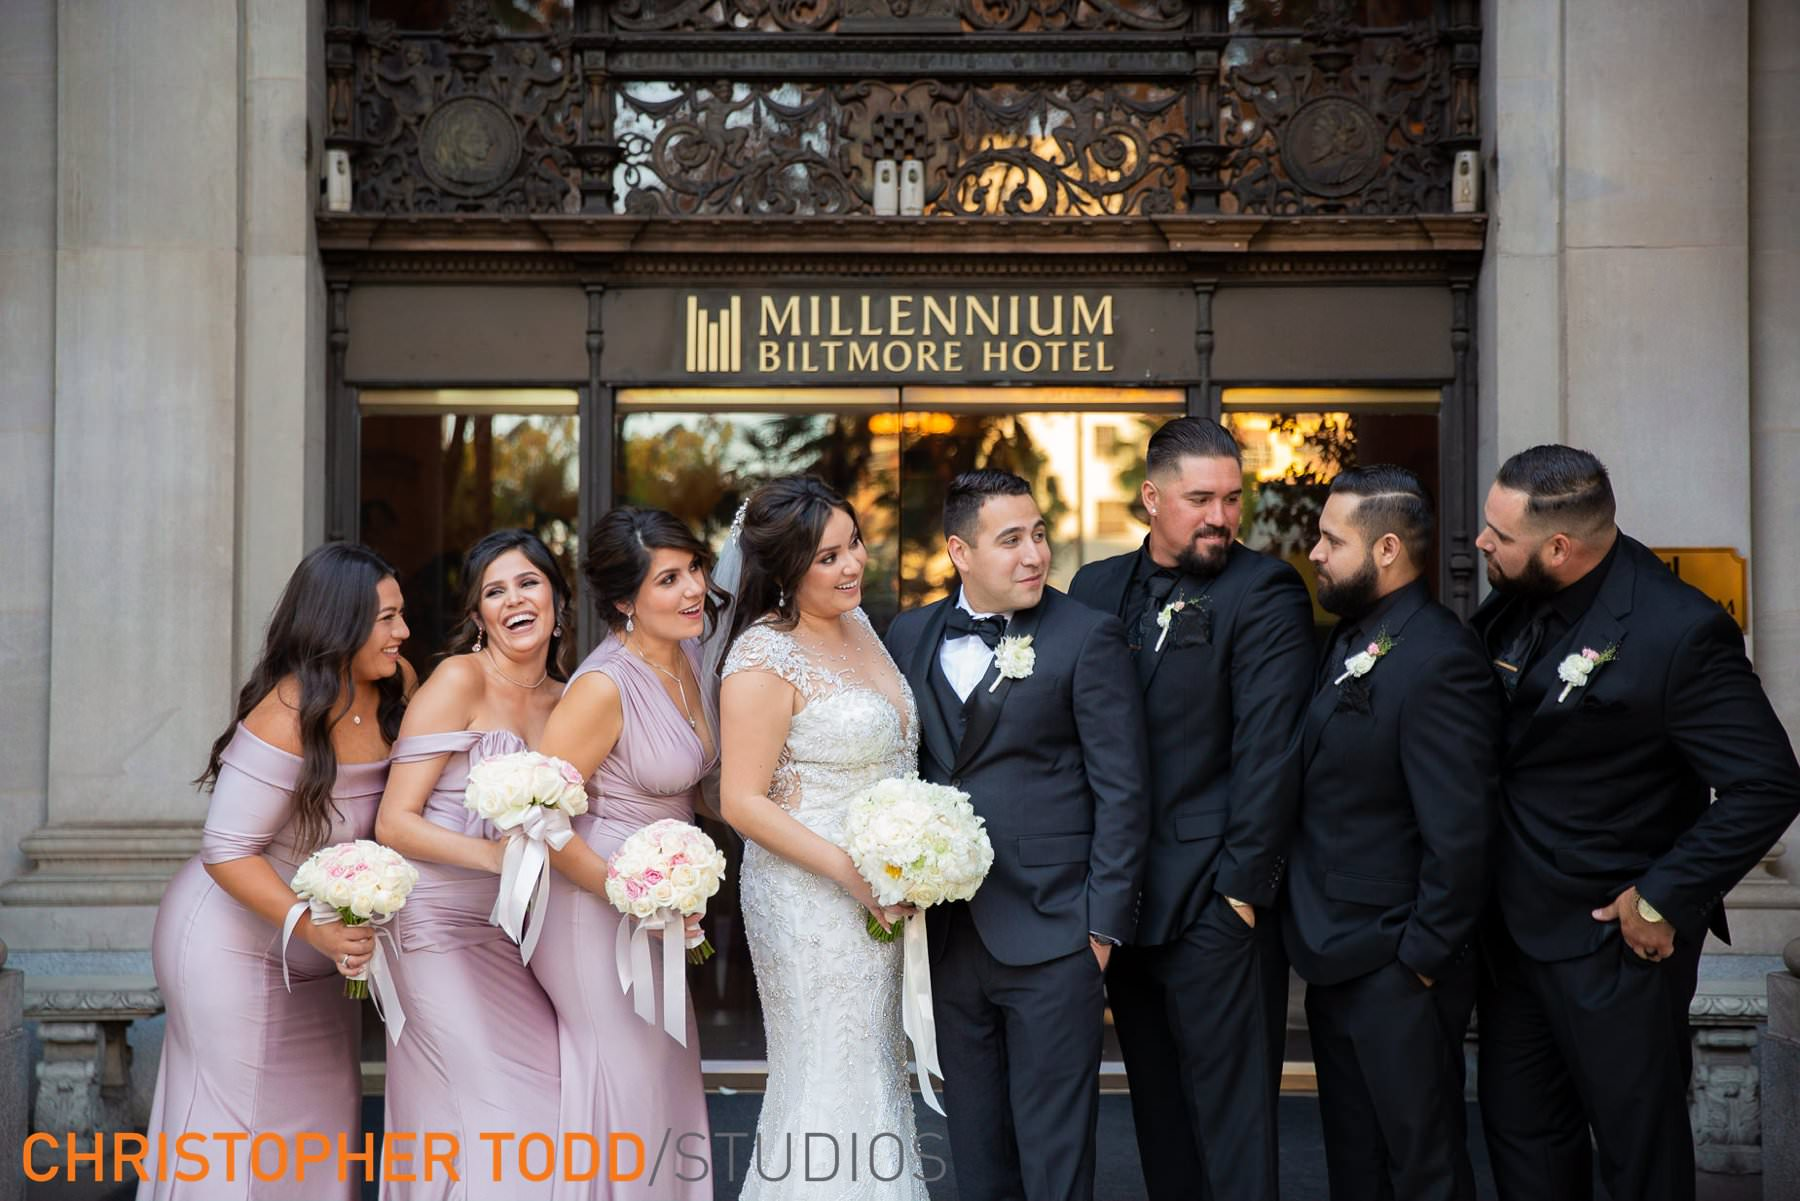 millennium-biltmore-hotel-wedding-photographs